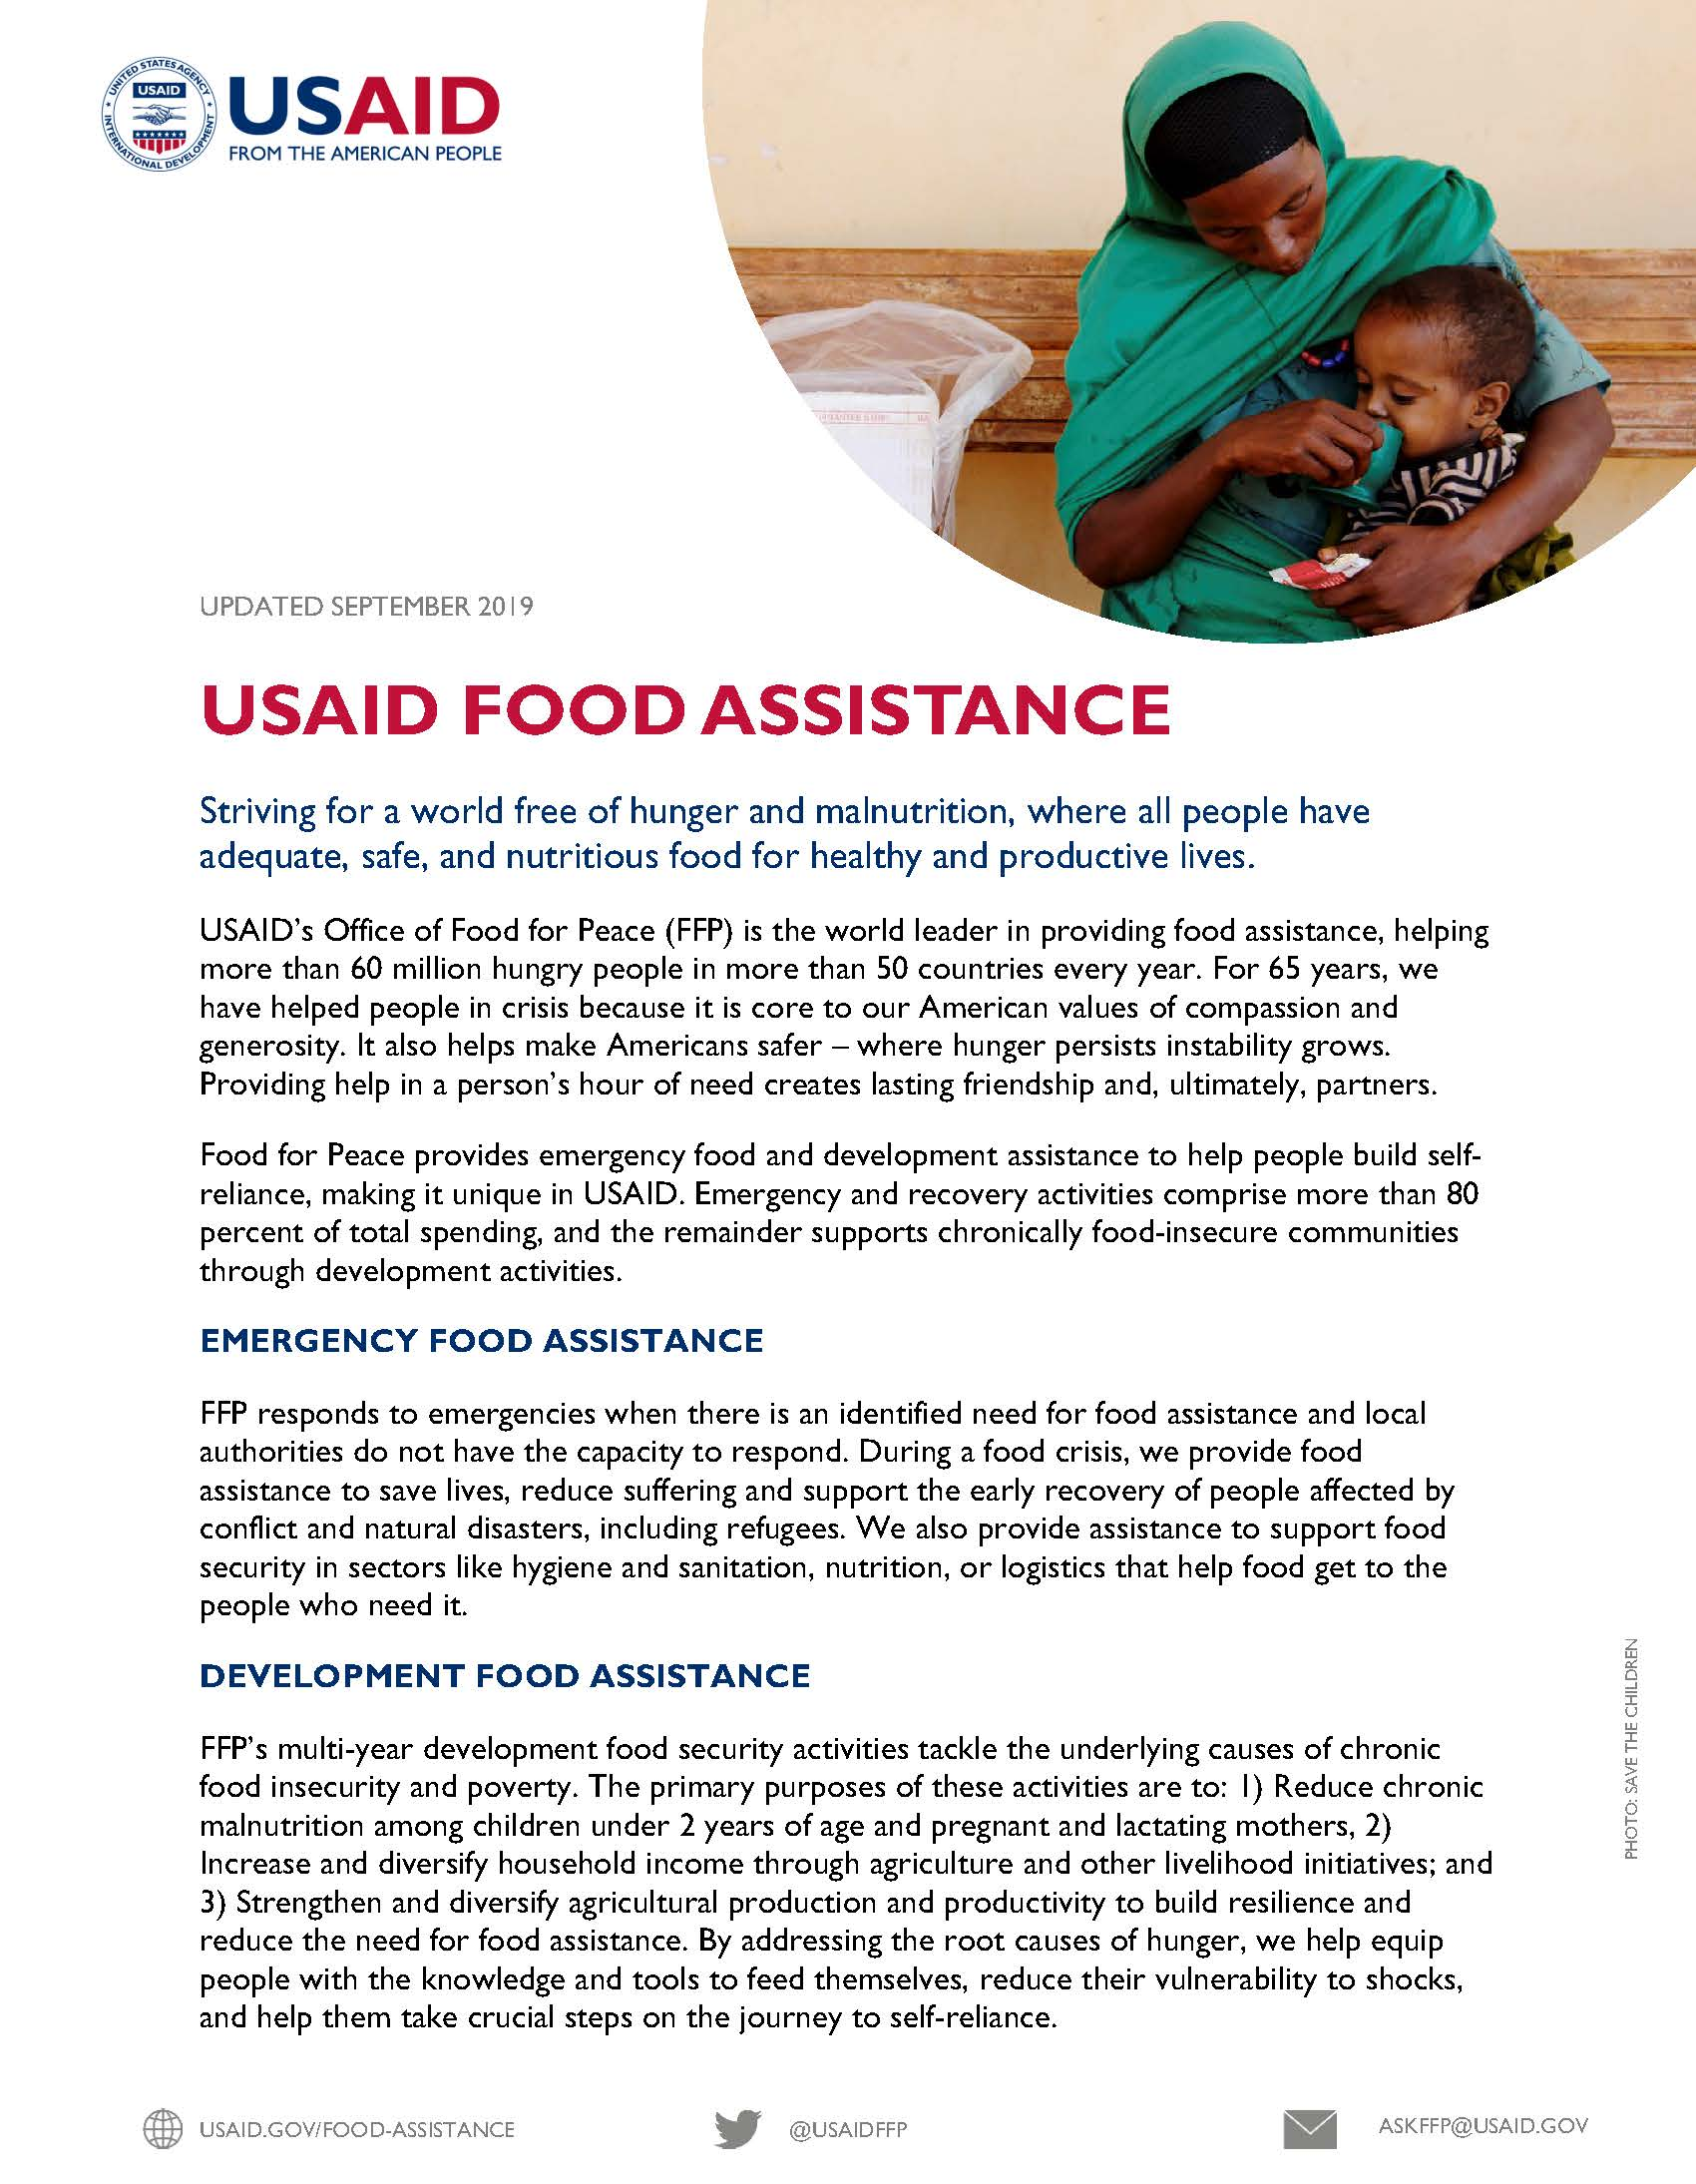 USAID Food Assistance Overview